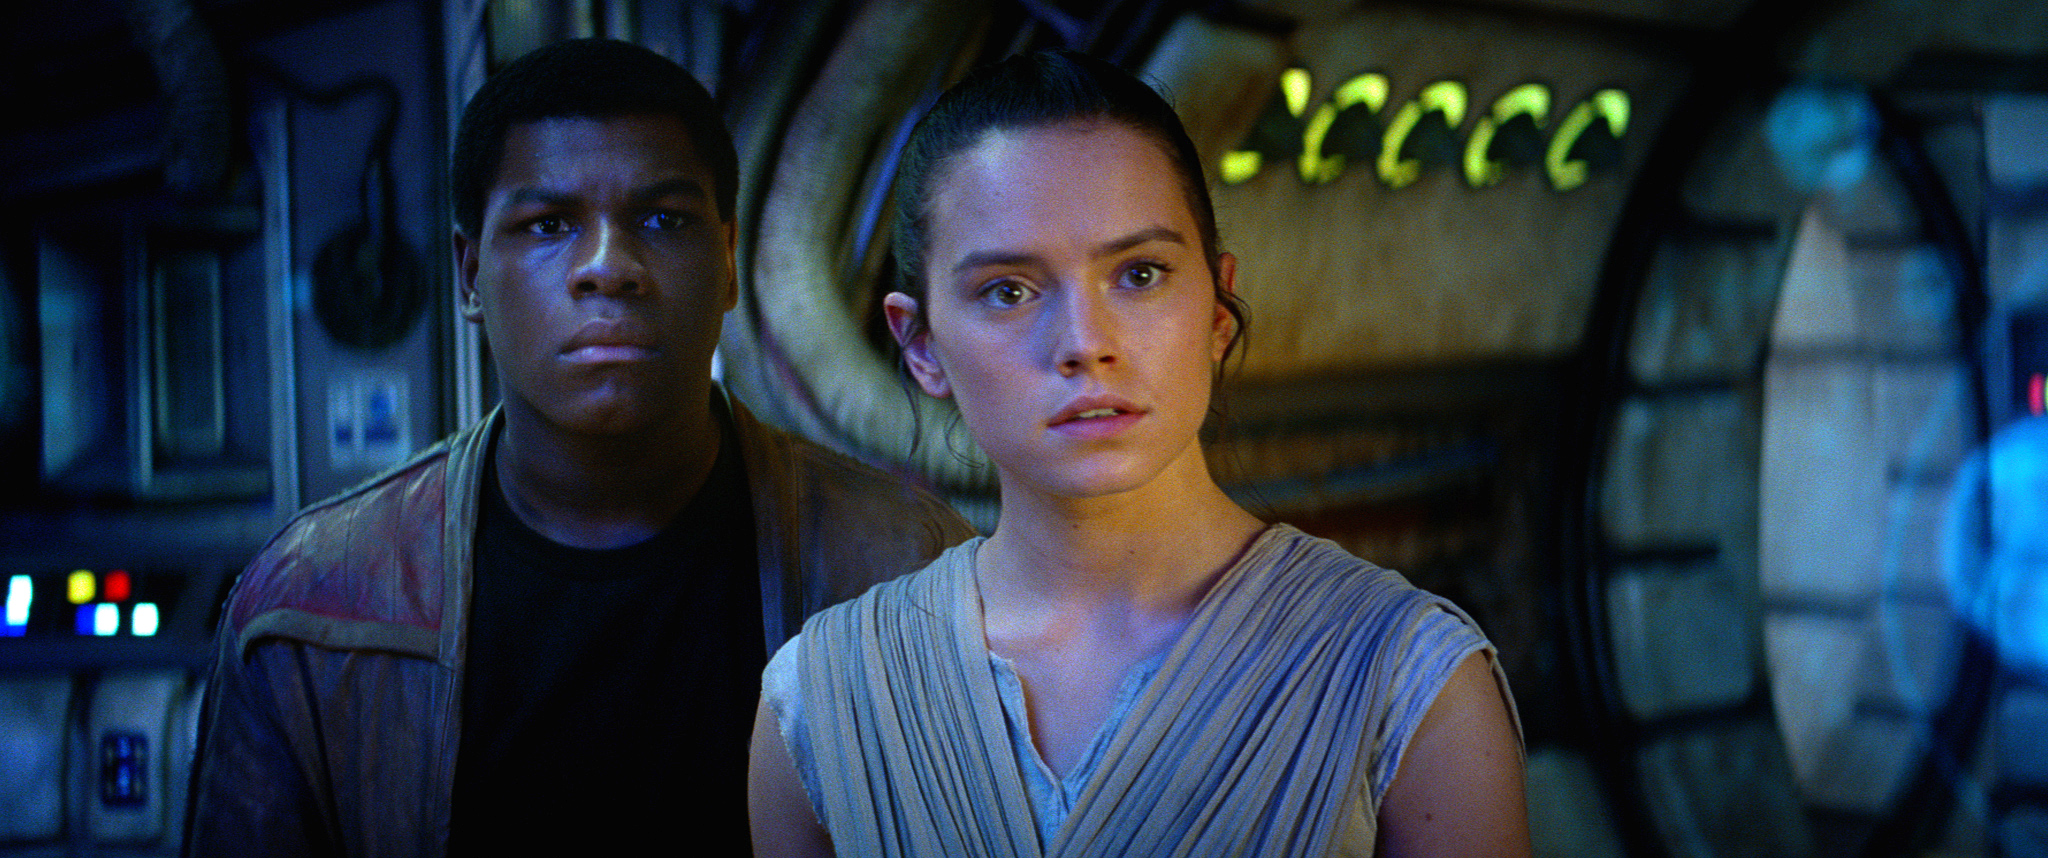 'The Force Awakens' Overtakes 'Avatar' as Domestic Box Office King